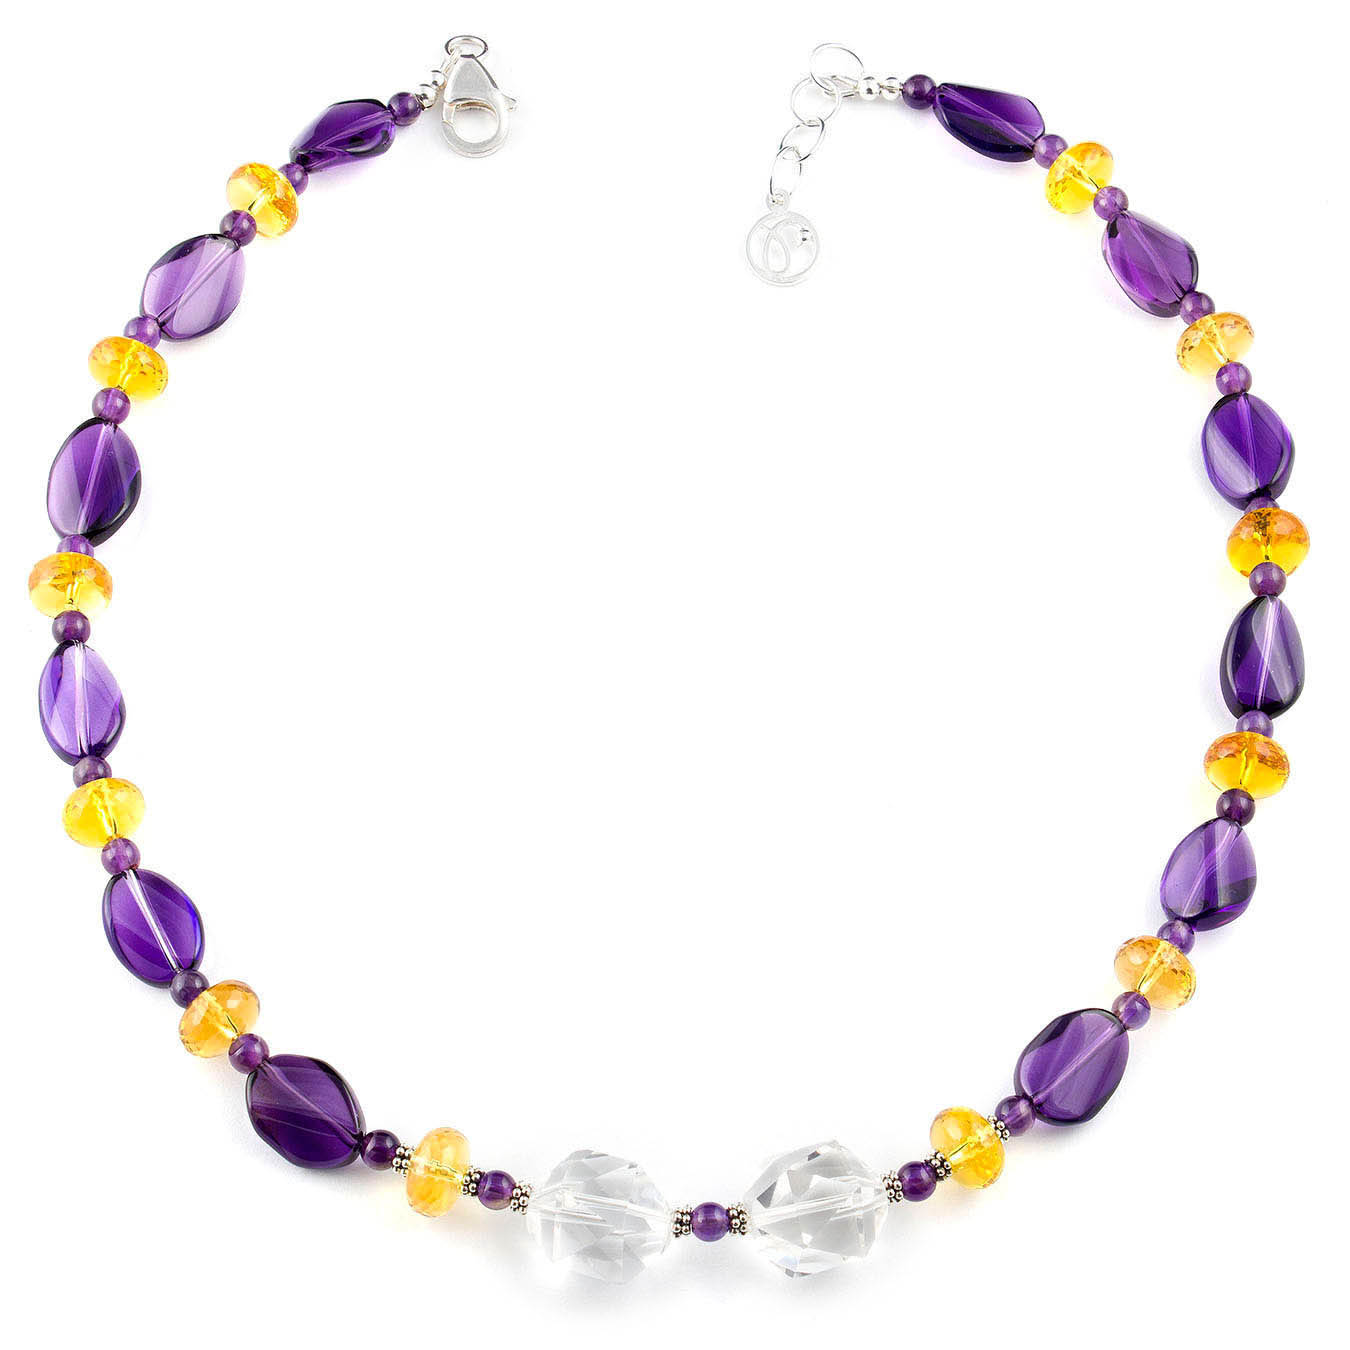 Multi-stone February birthstone necklace set made with amethyst